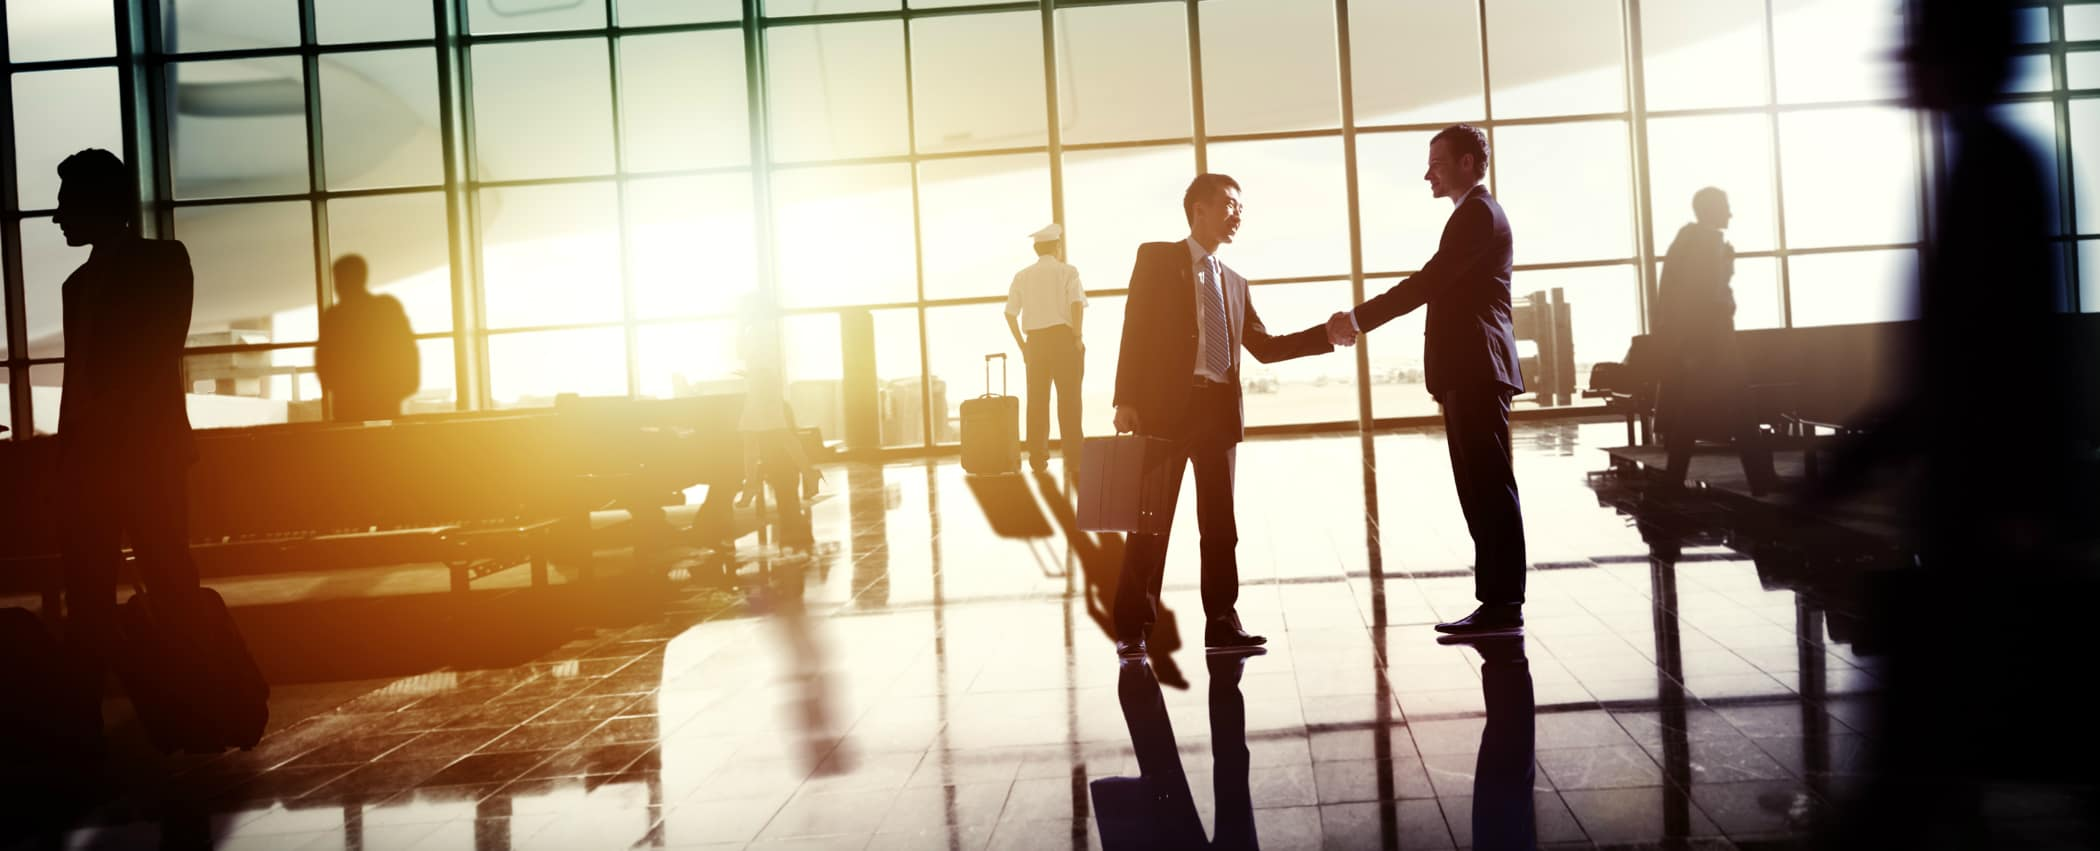 Two executive men shake hands by a private plane.